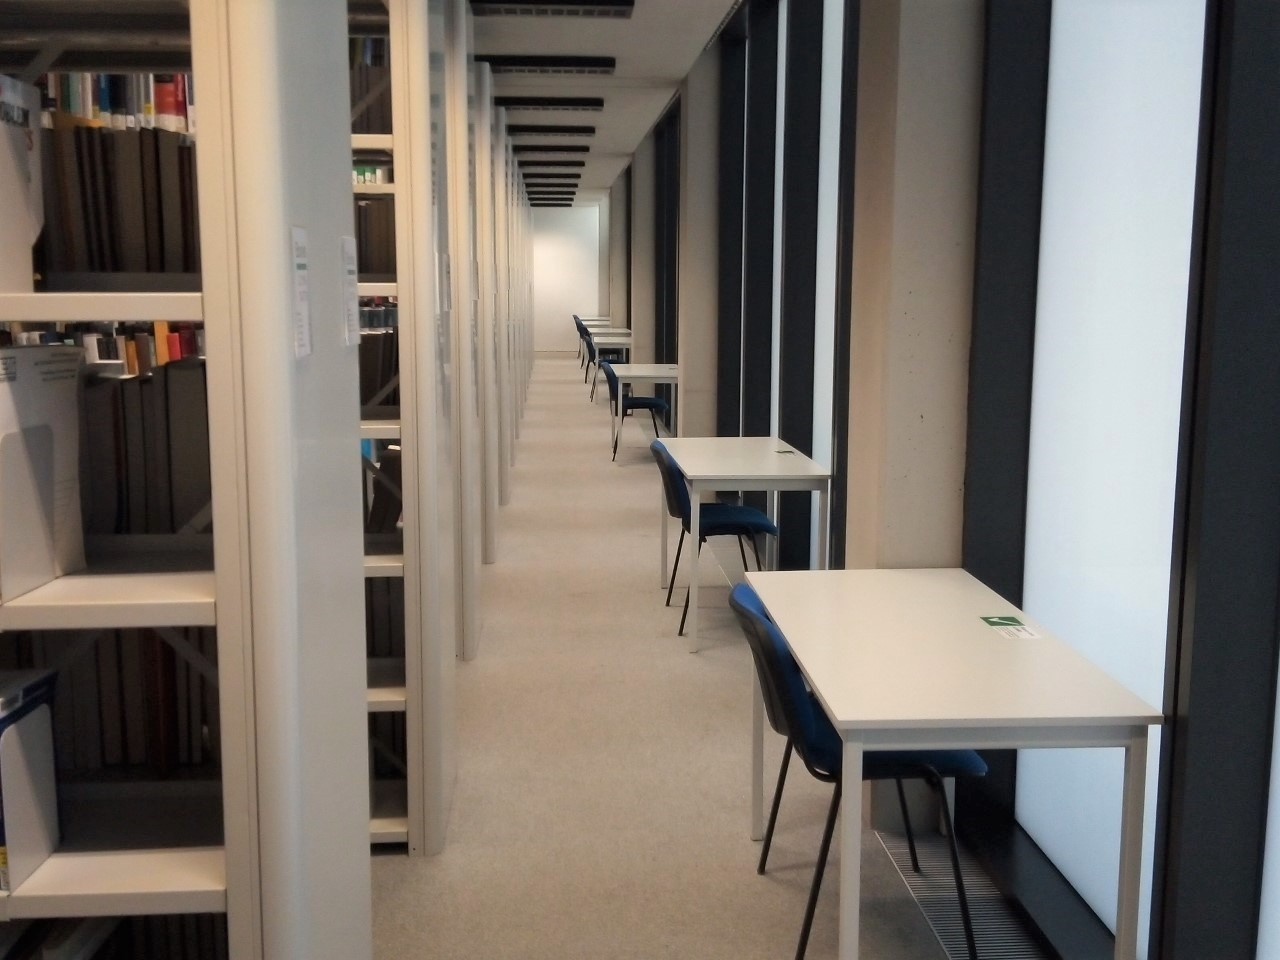 Photos of individual desks, spaced out along a wall/windows adjacent to the St Cross Building.